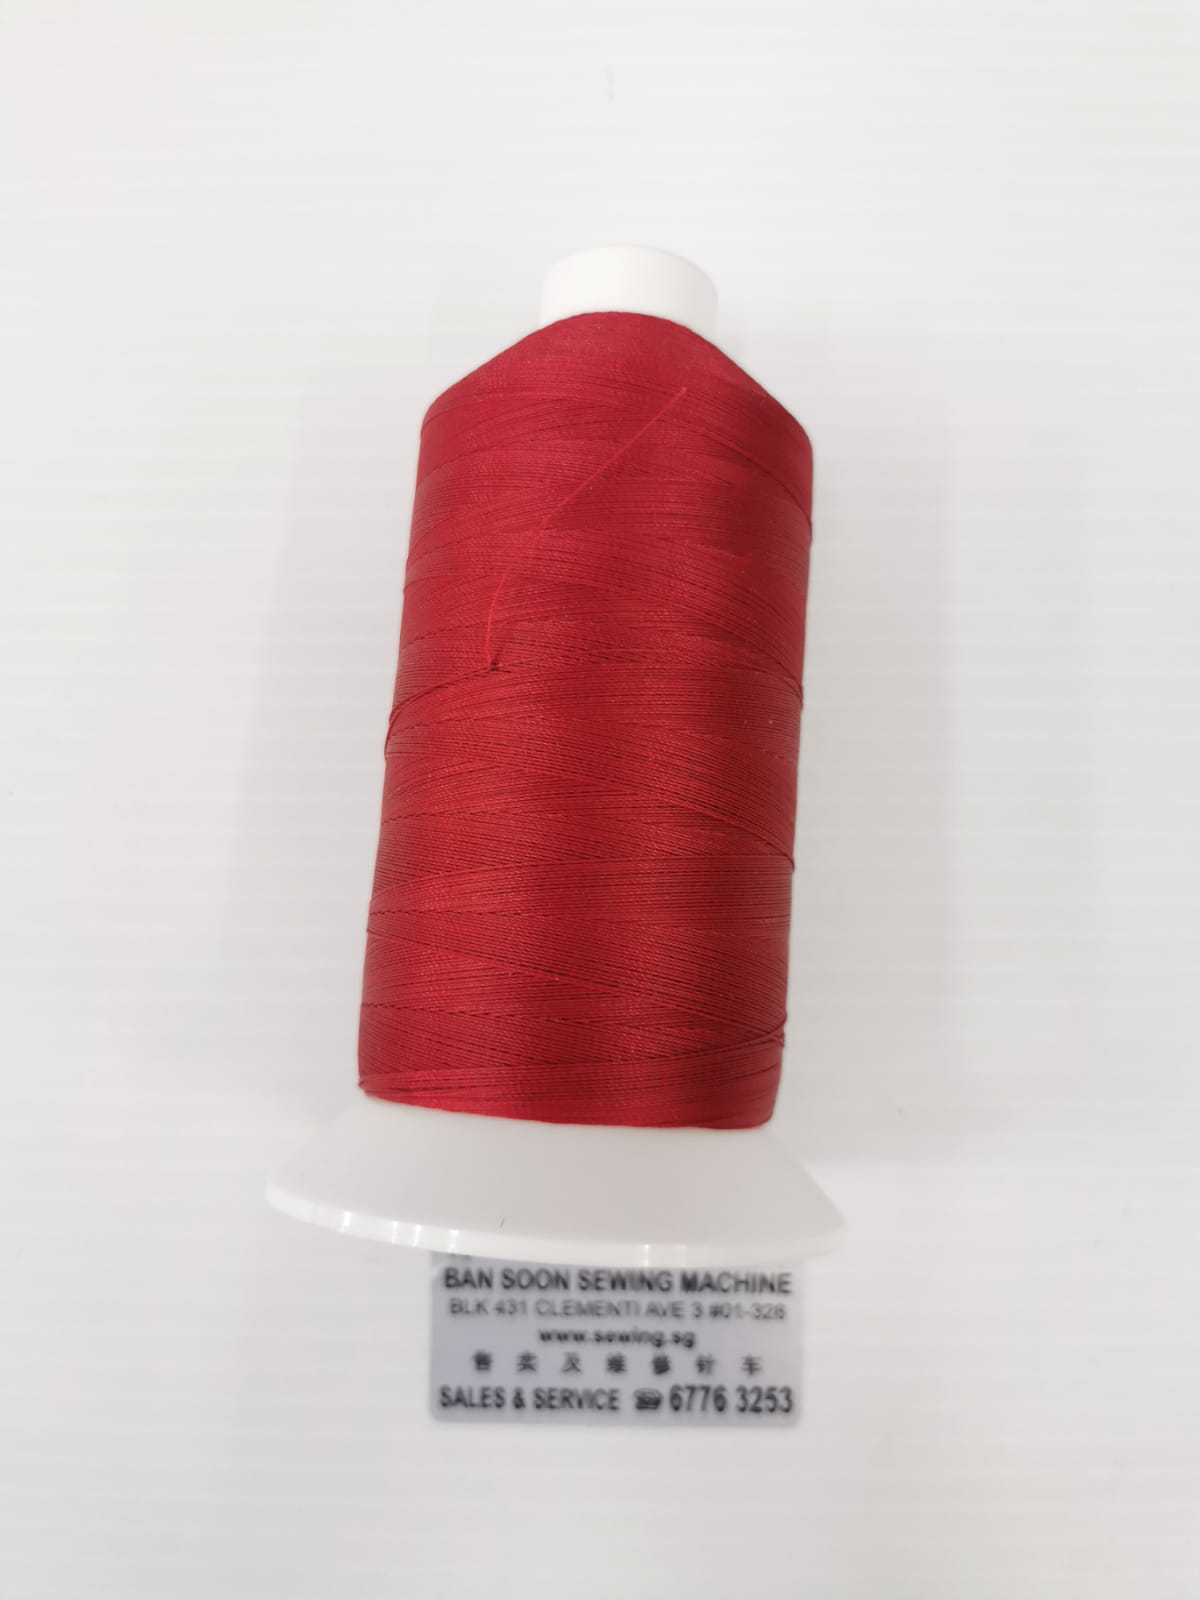 OUTDOOR SEWING THREADS, UV Resistance sewing thread. Specially produced for Shelters, Awnings and all outdoor sewing applications. SERABOND 30 V92 Red